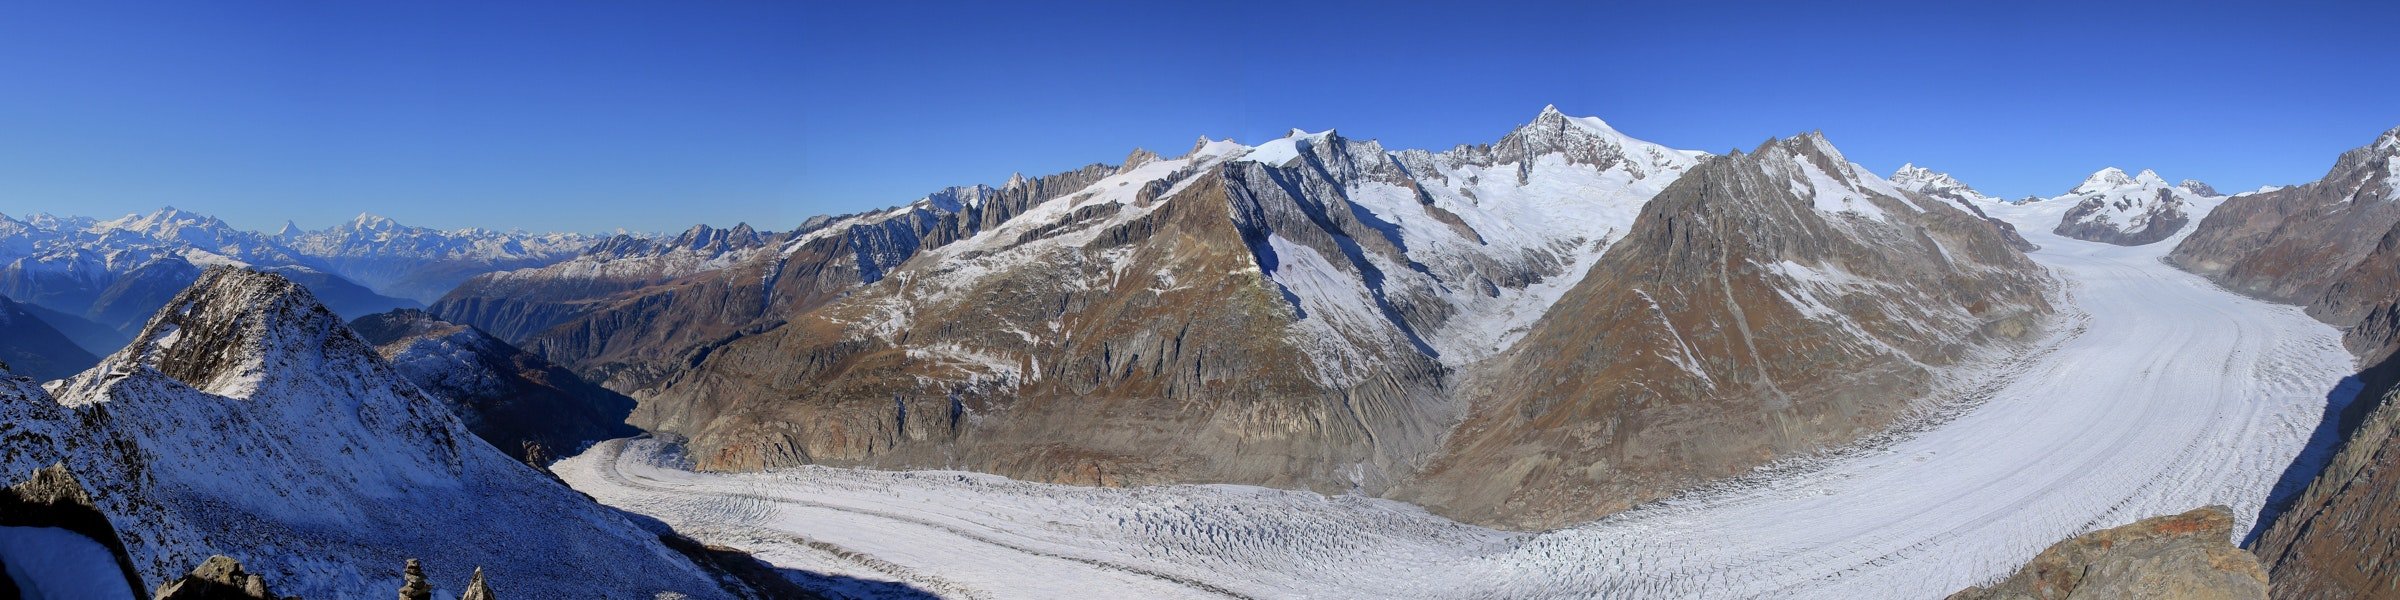 Aletsch glacier from Eggishorn